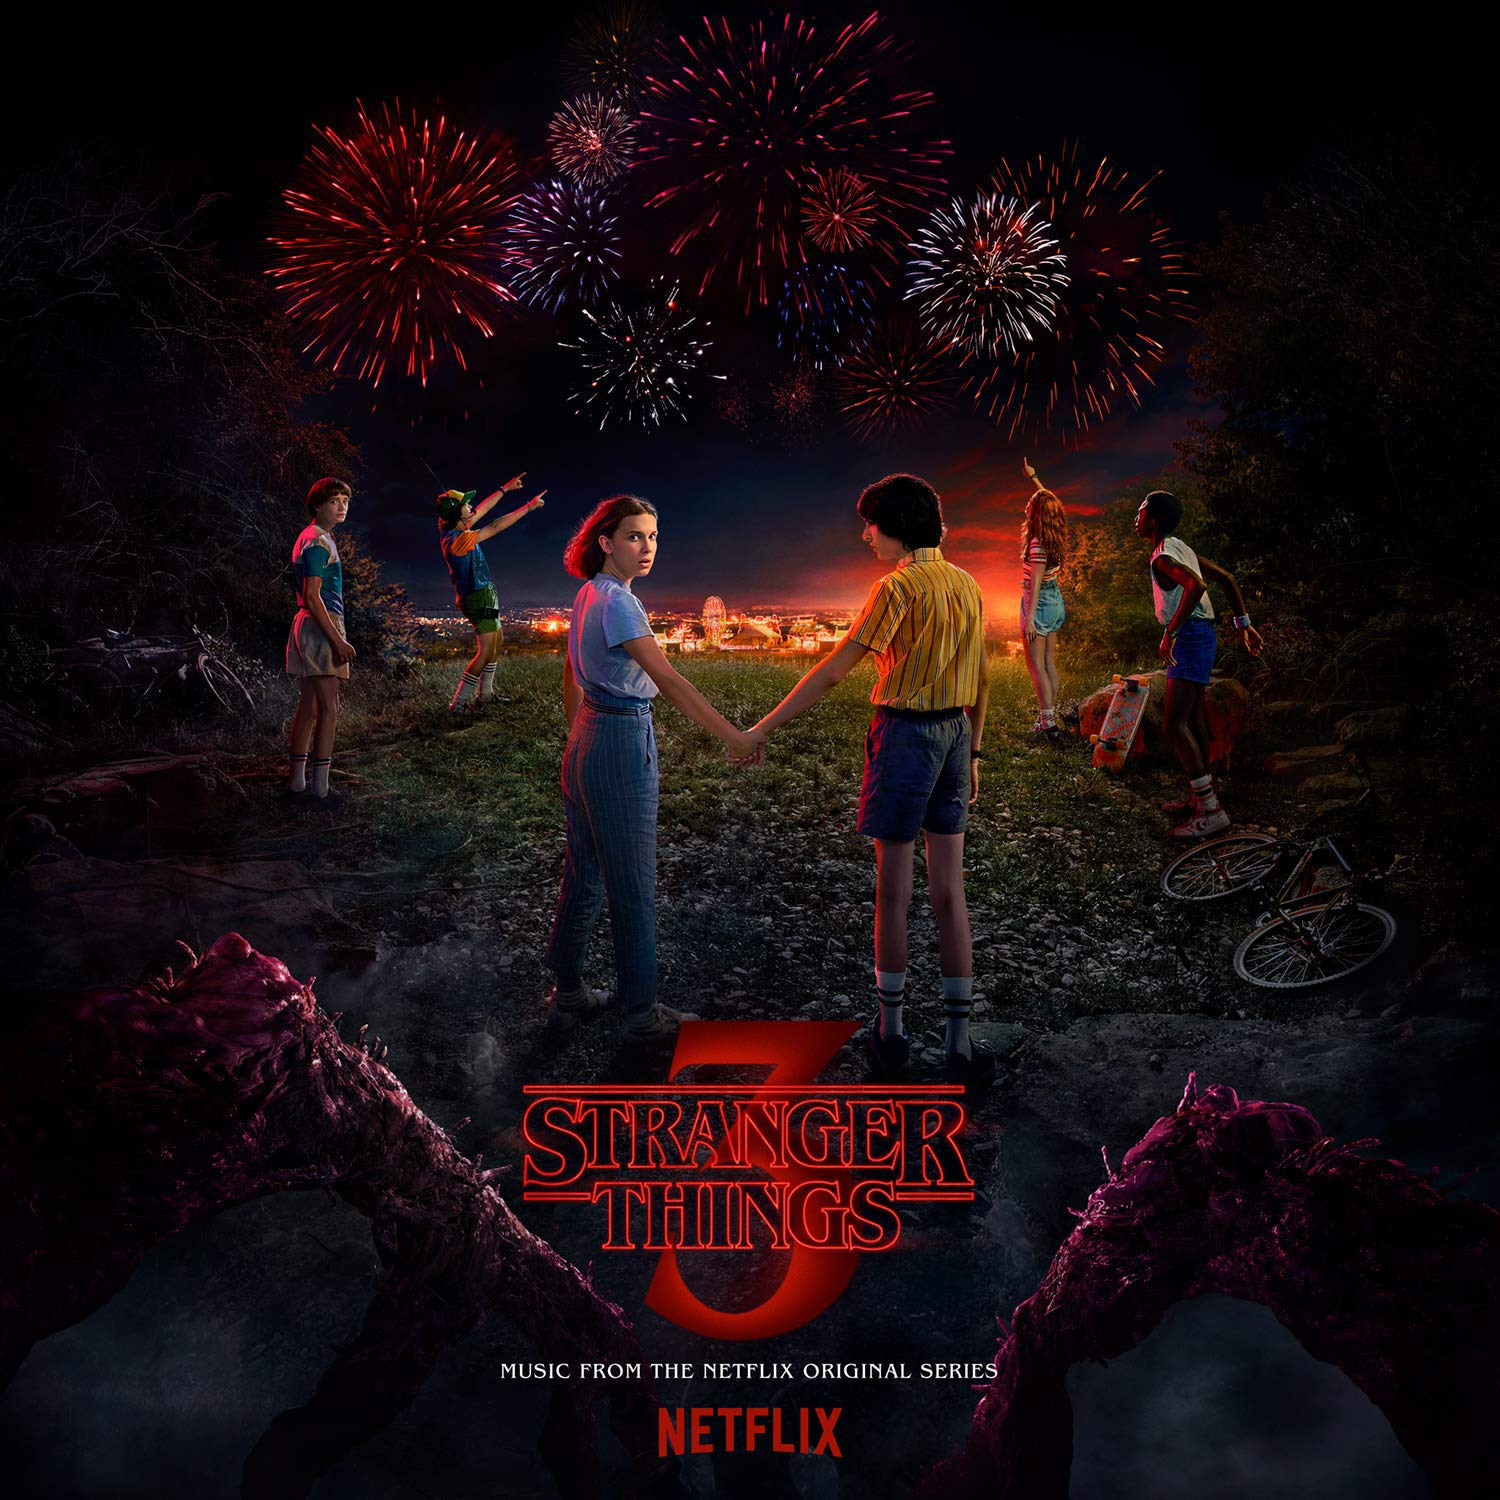 Stranger Things [TV Series]